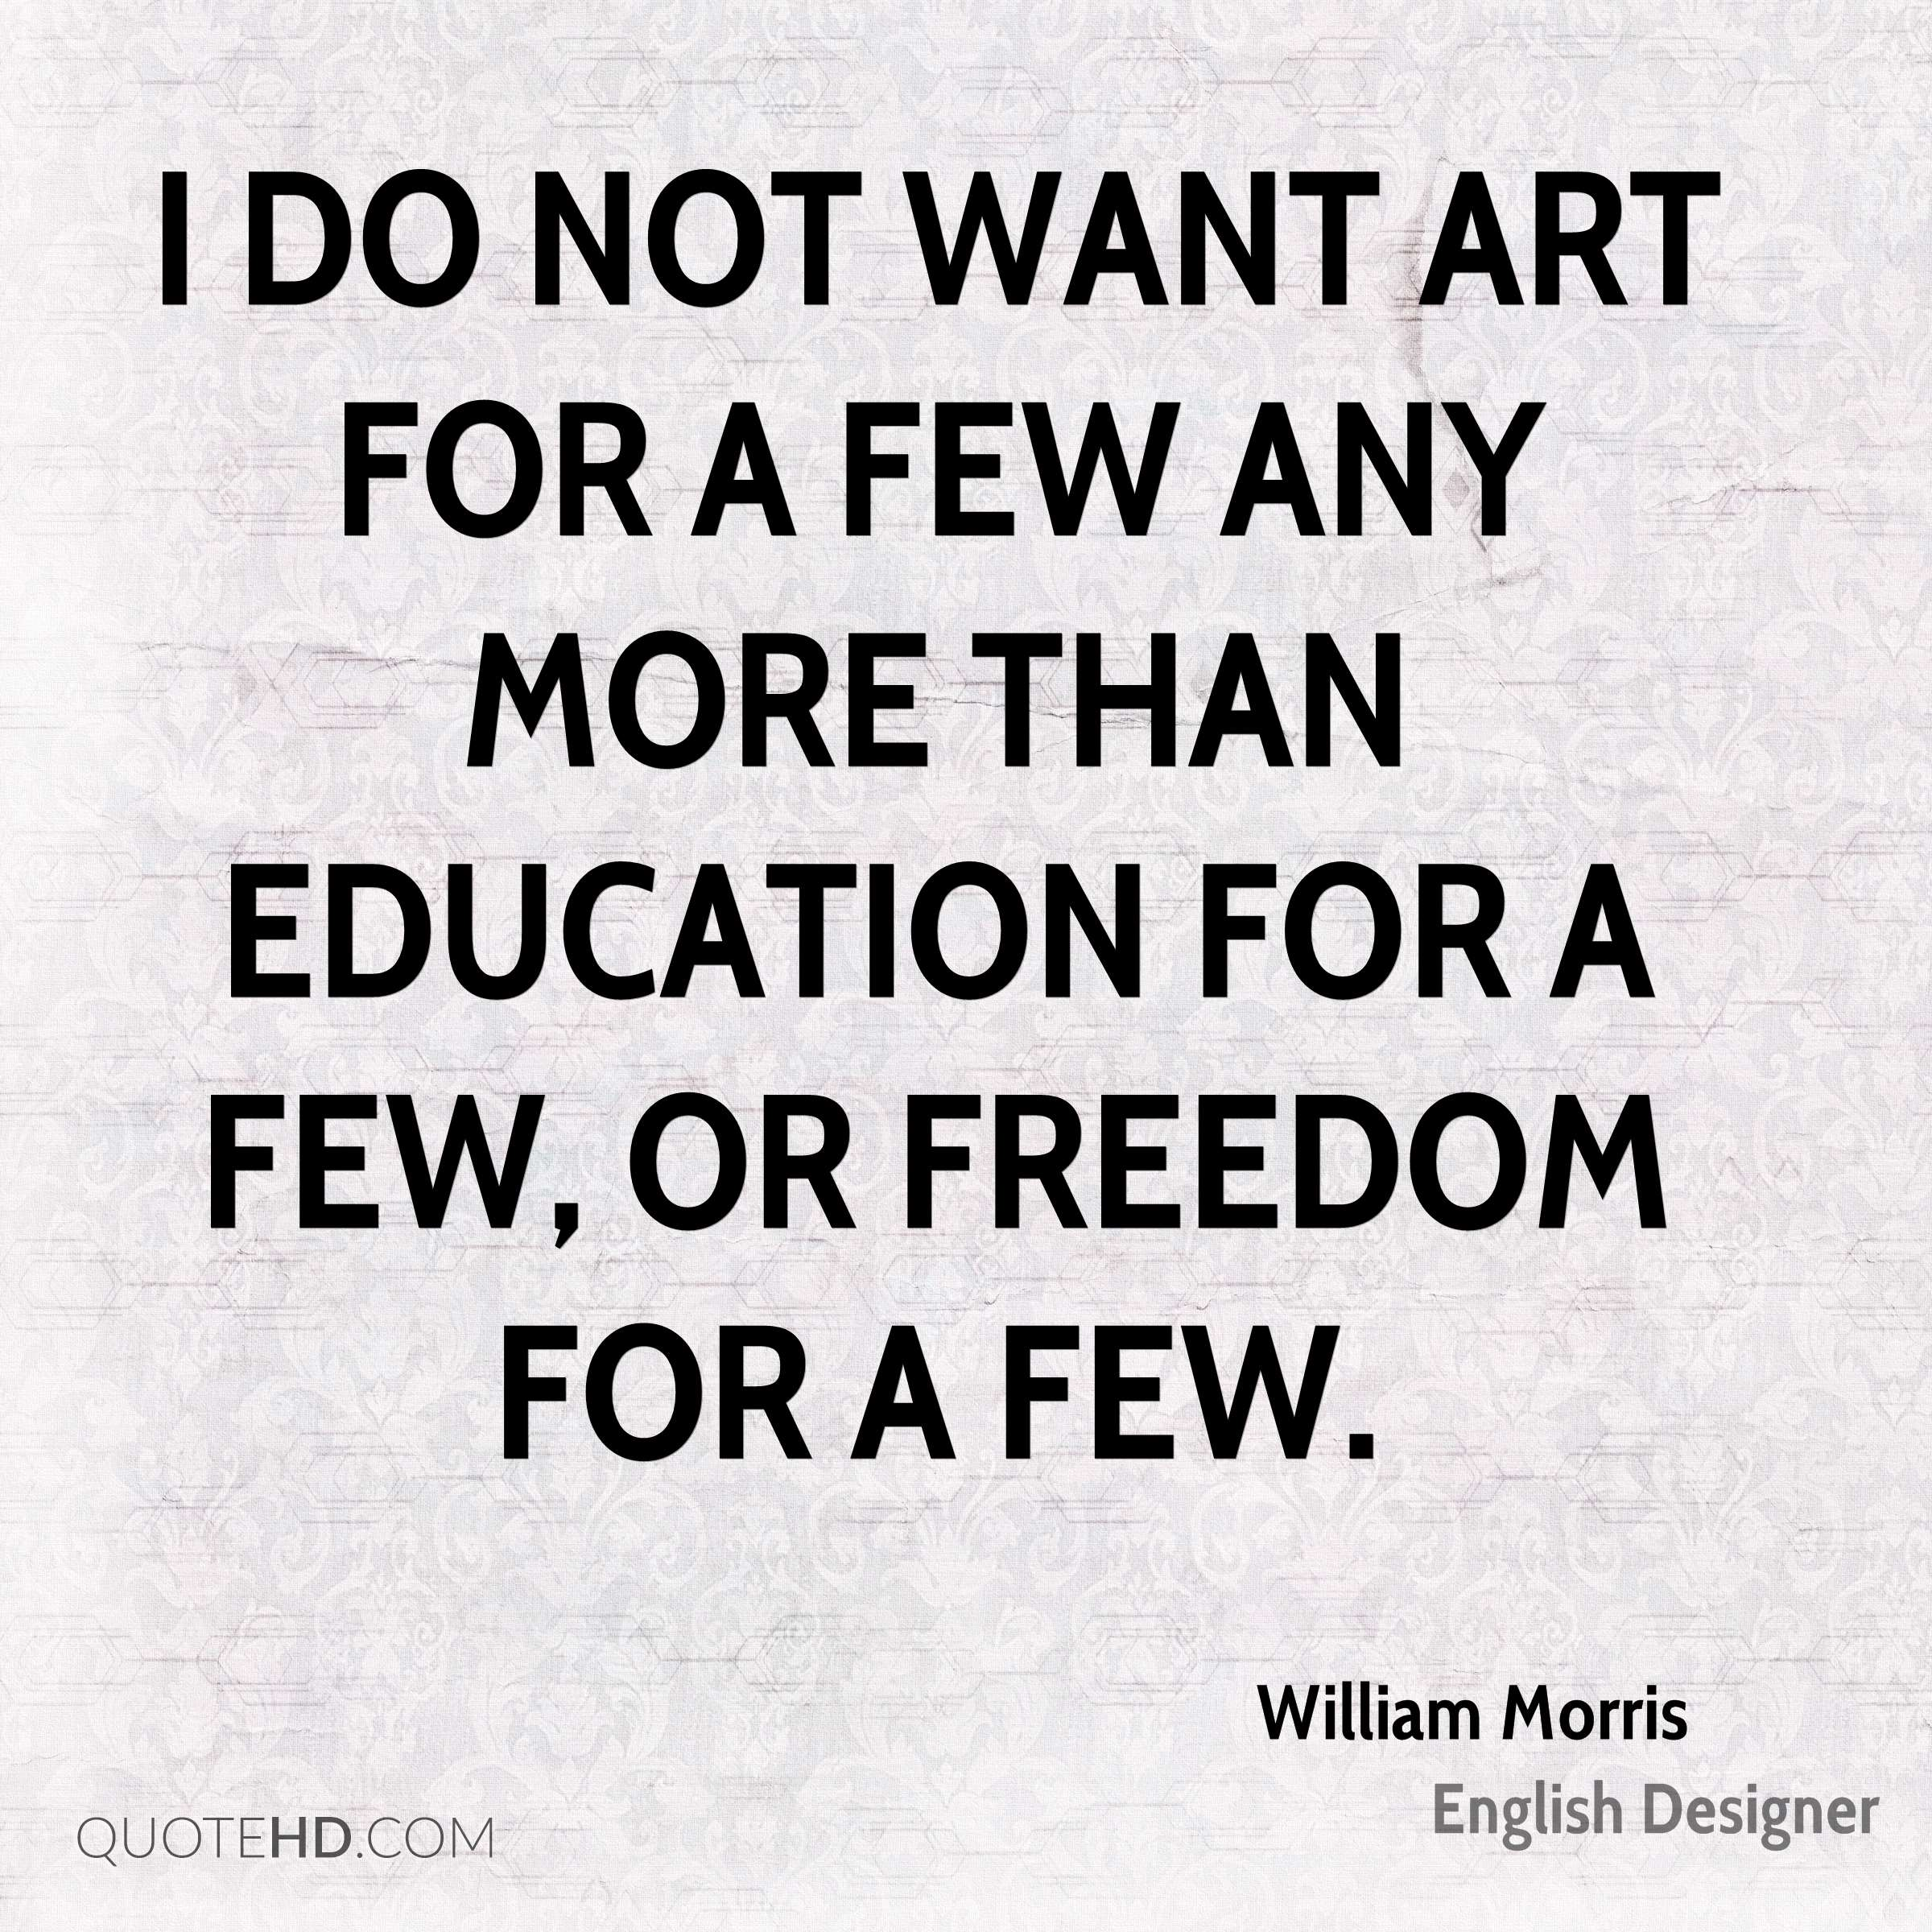 I do not want art for a few any more than education for a few, or freedom for a few.